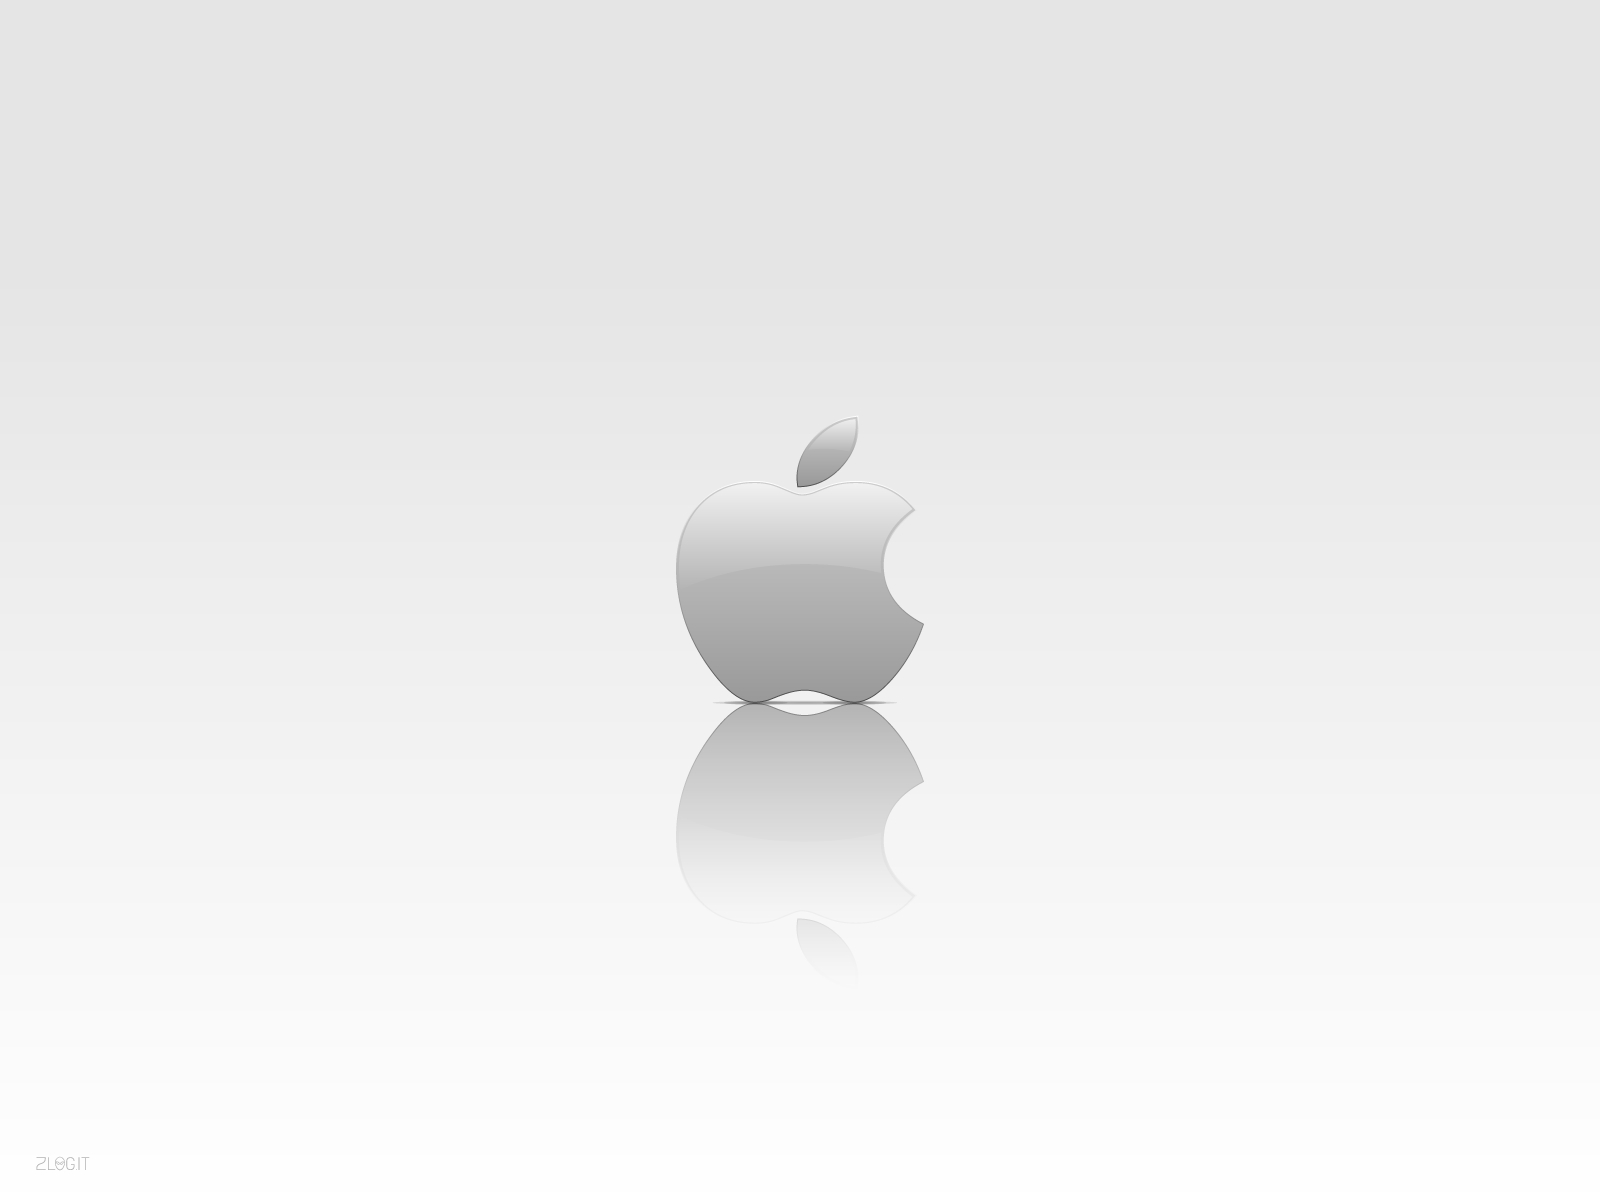 Apple Images Apple Logo Hd Wallpaper And Background Photos 41149